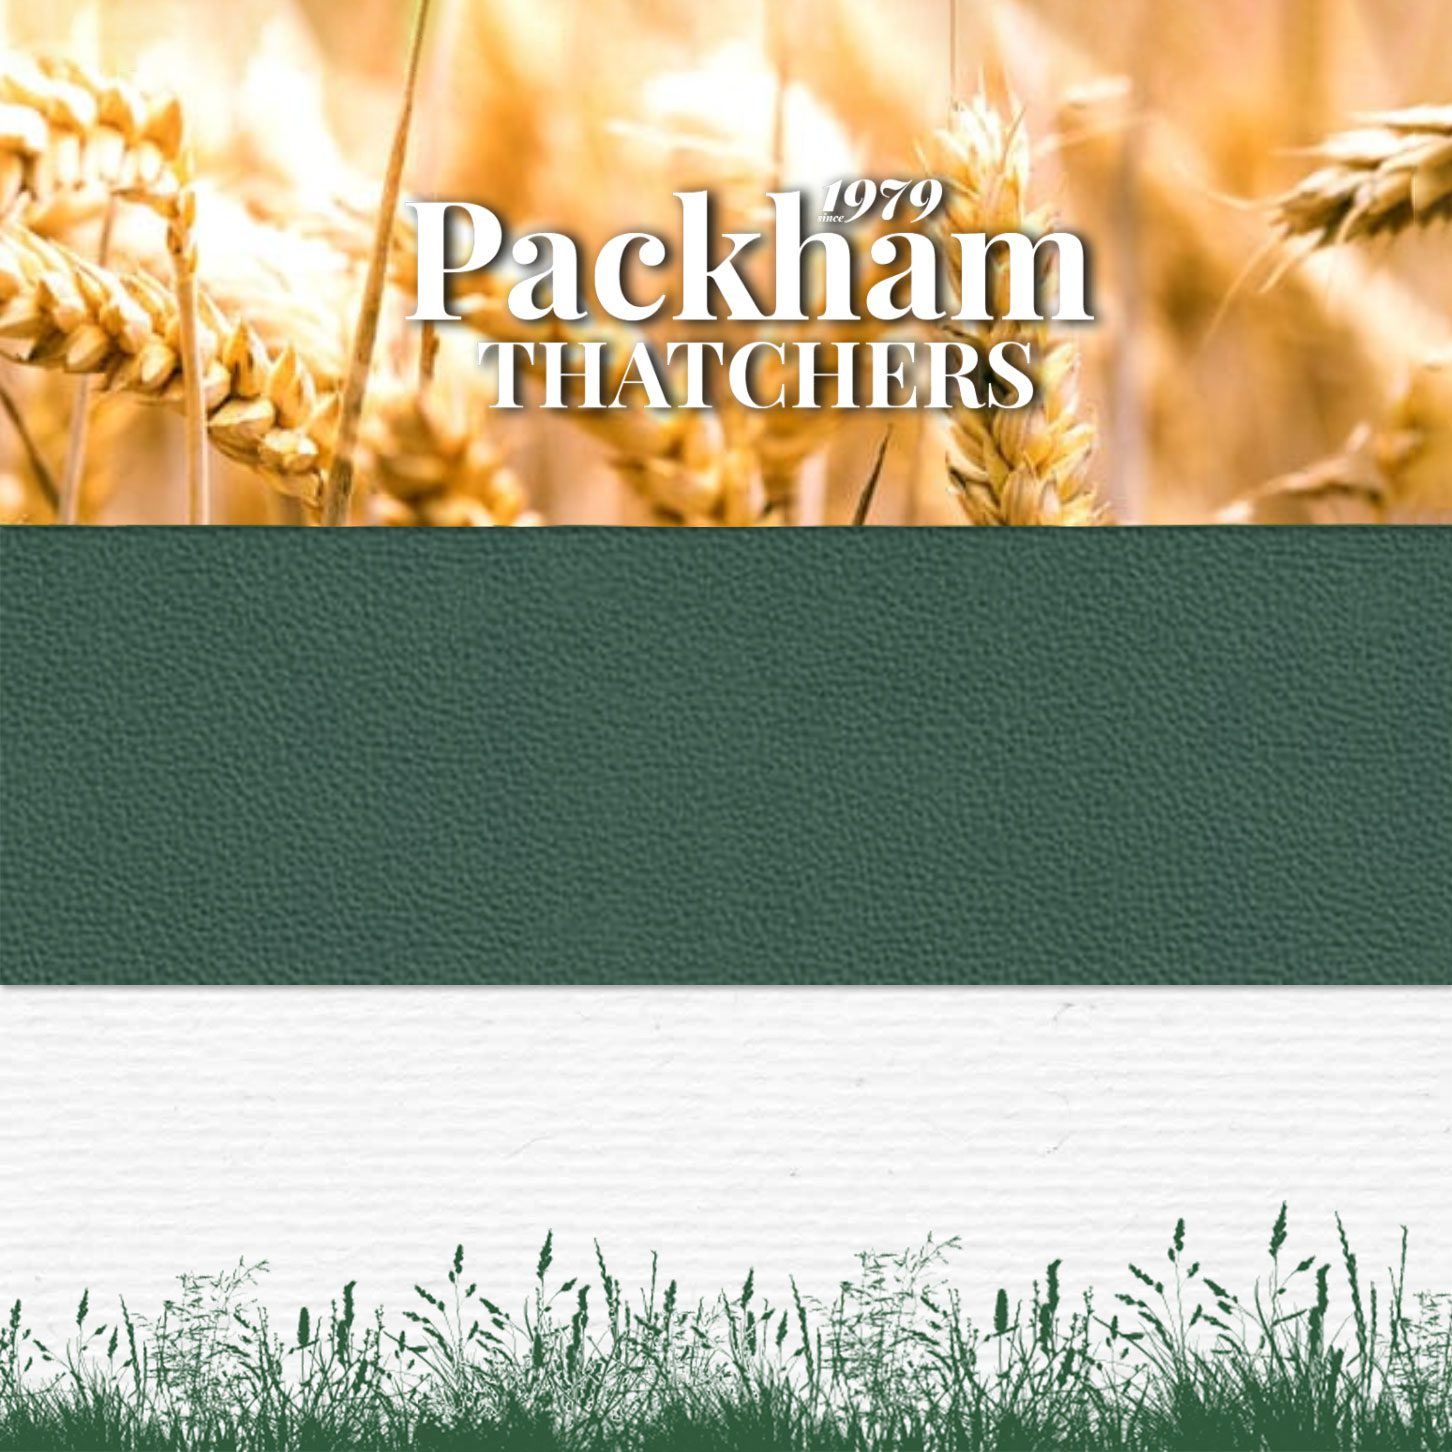 Adding texture in Website Design | Packham Thatchers website designed & developed by Stable Design